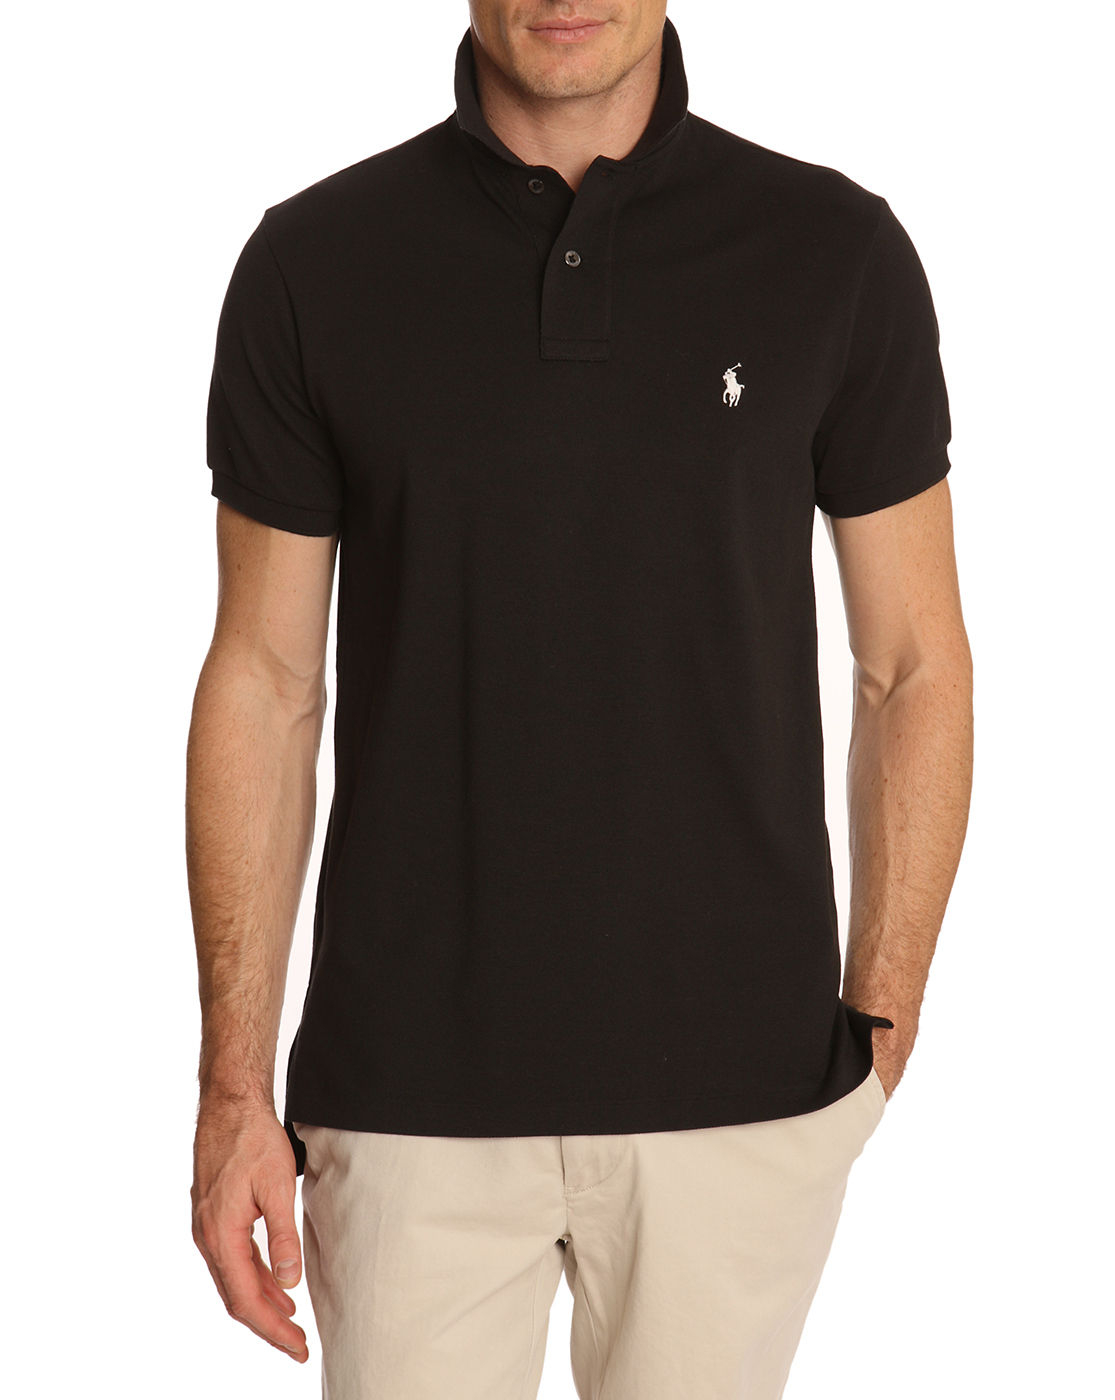 Polo ralph lauren black slim fit stretch polo shirt in for Mens polo shirts online